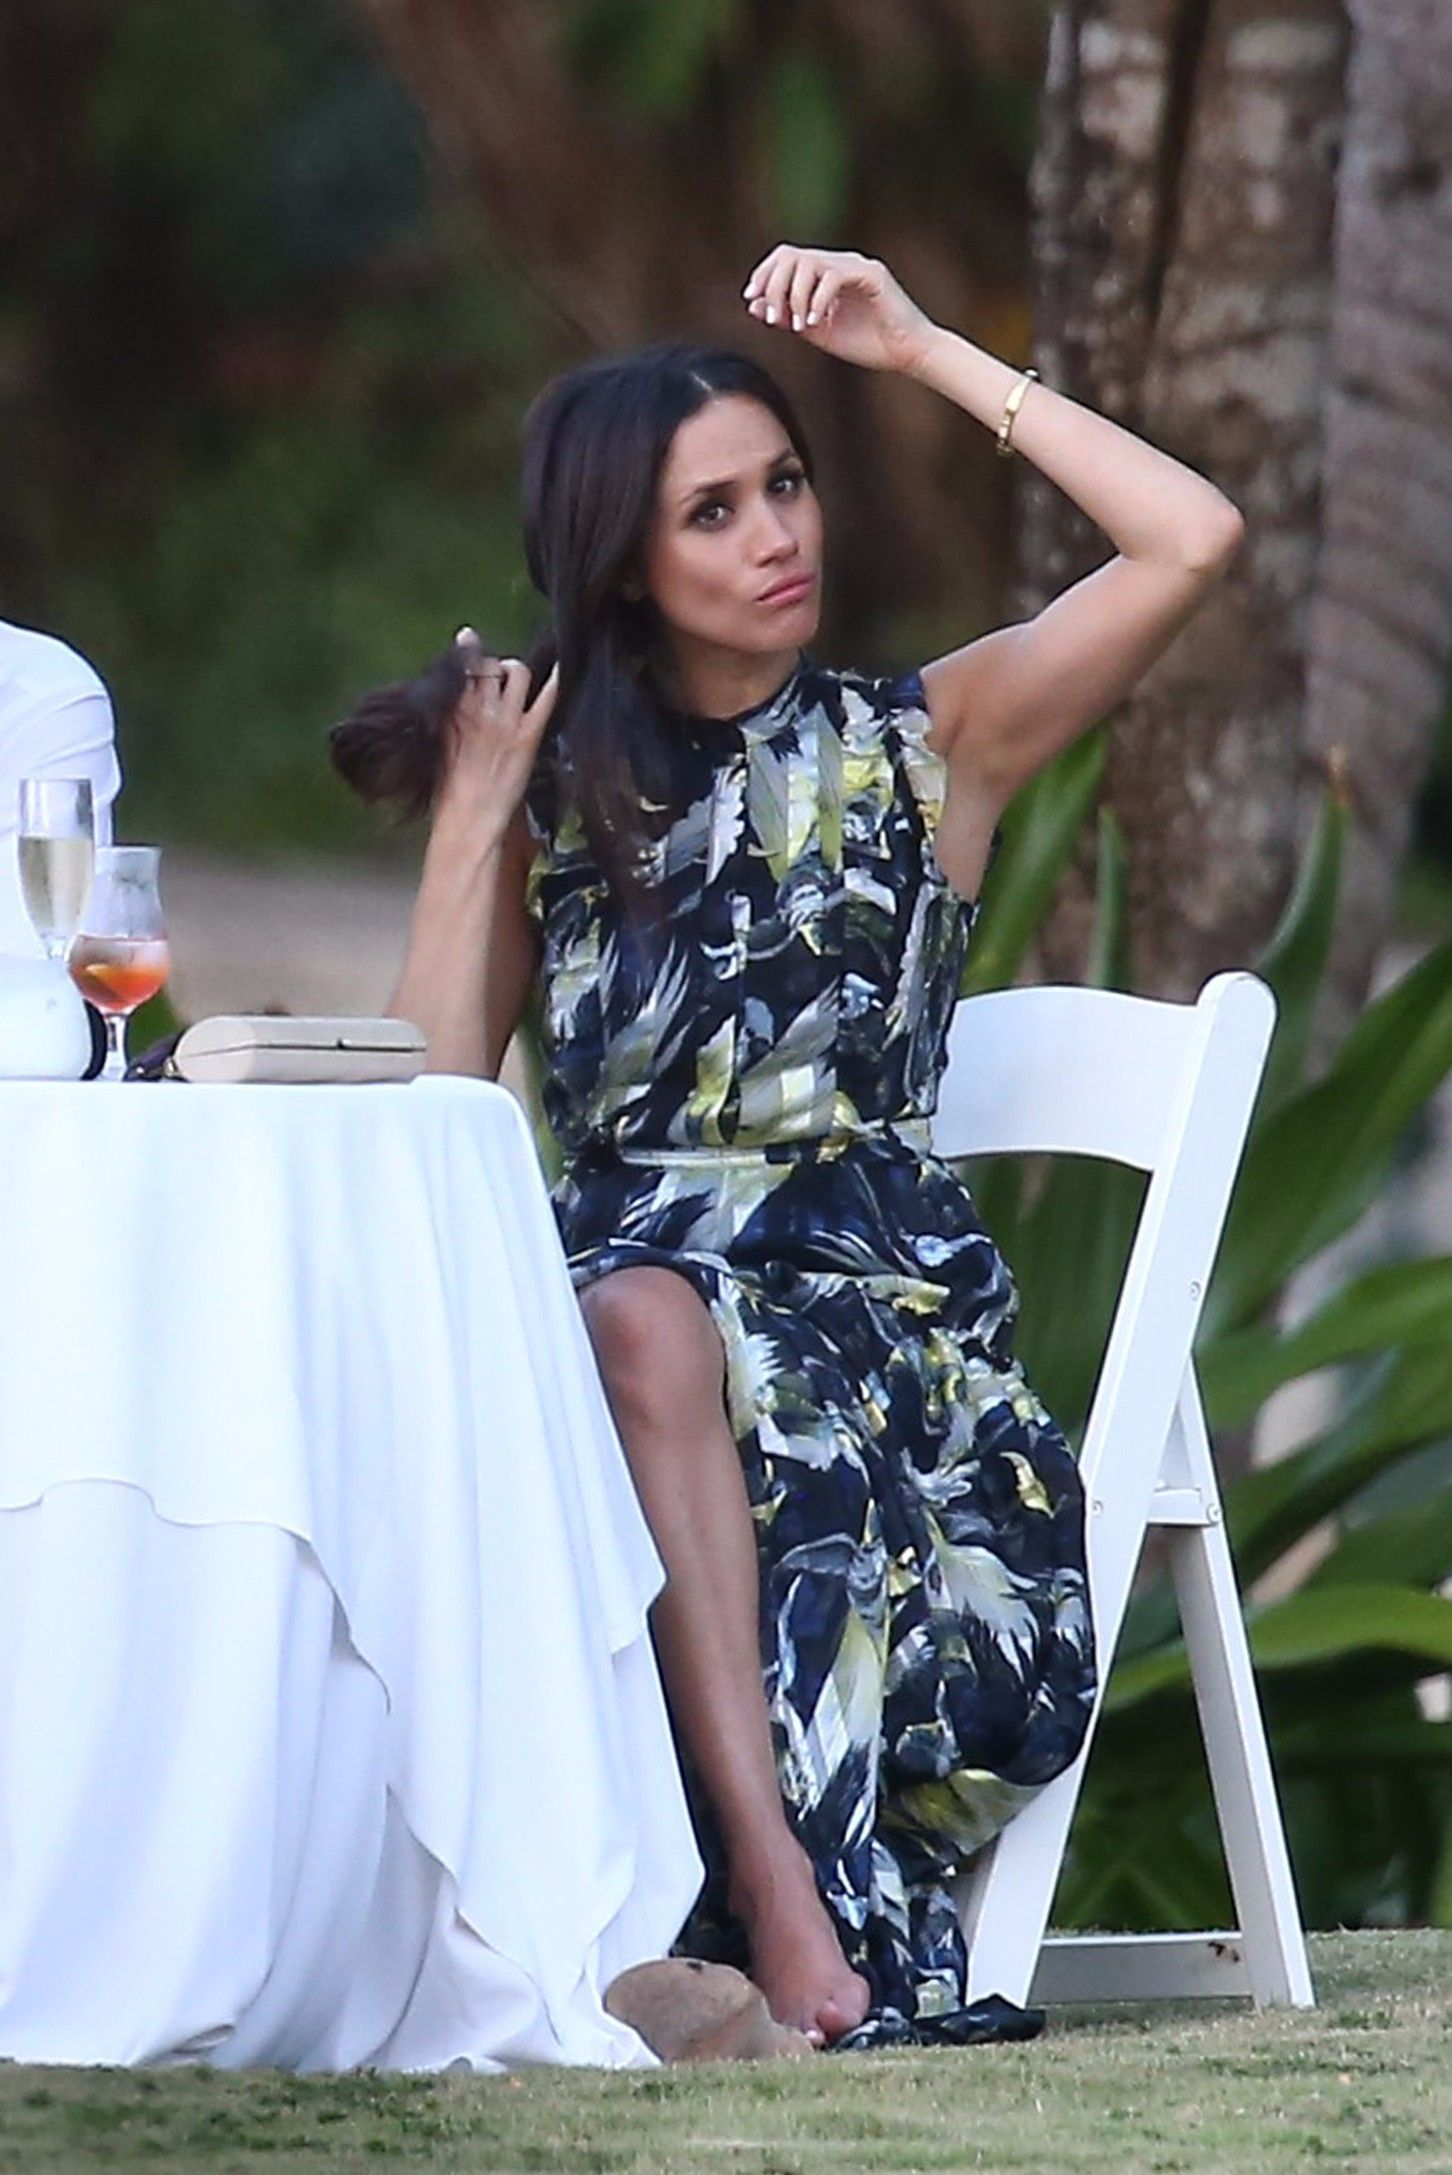 Meghan Markle Wears The Perfect Vacation Dress at Bondi Beach Meghan Markle Wears The Perfect Vacation Dress at Bondi Beach new pics